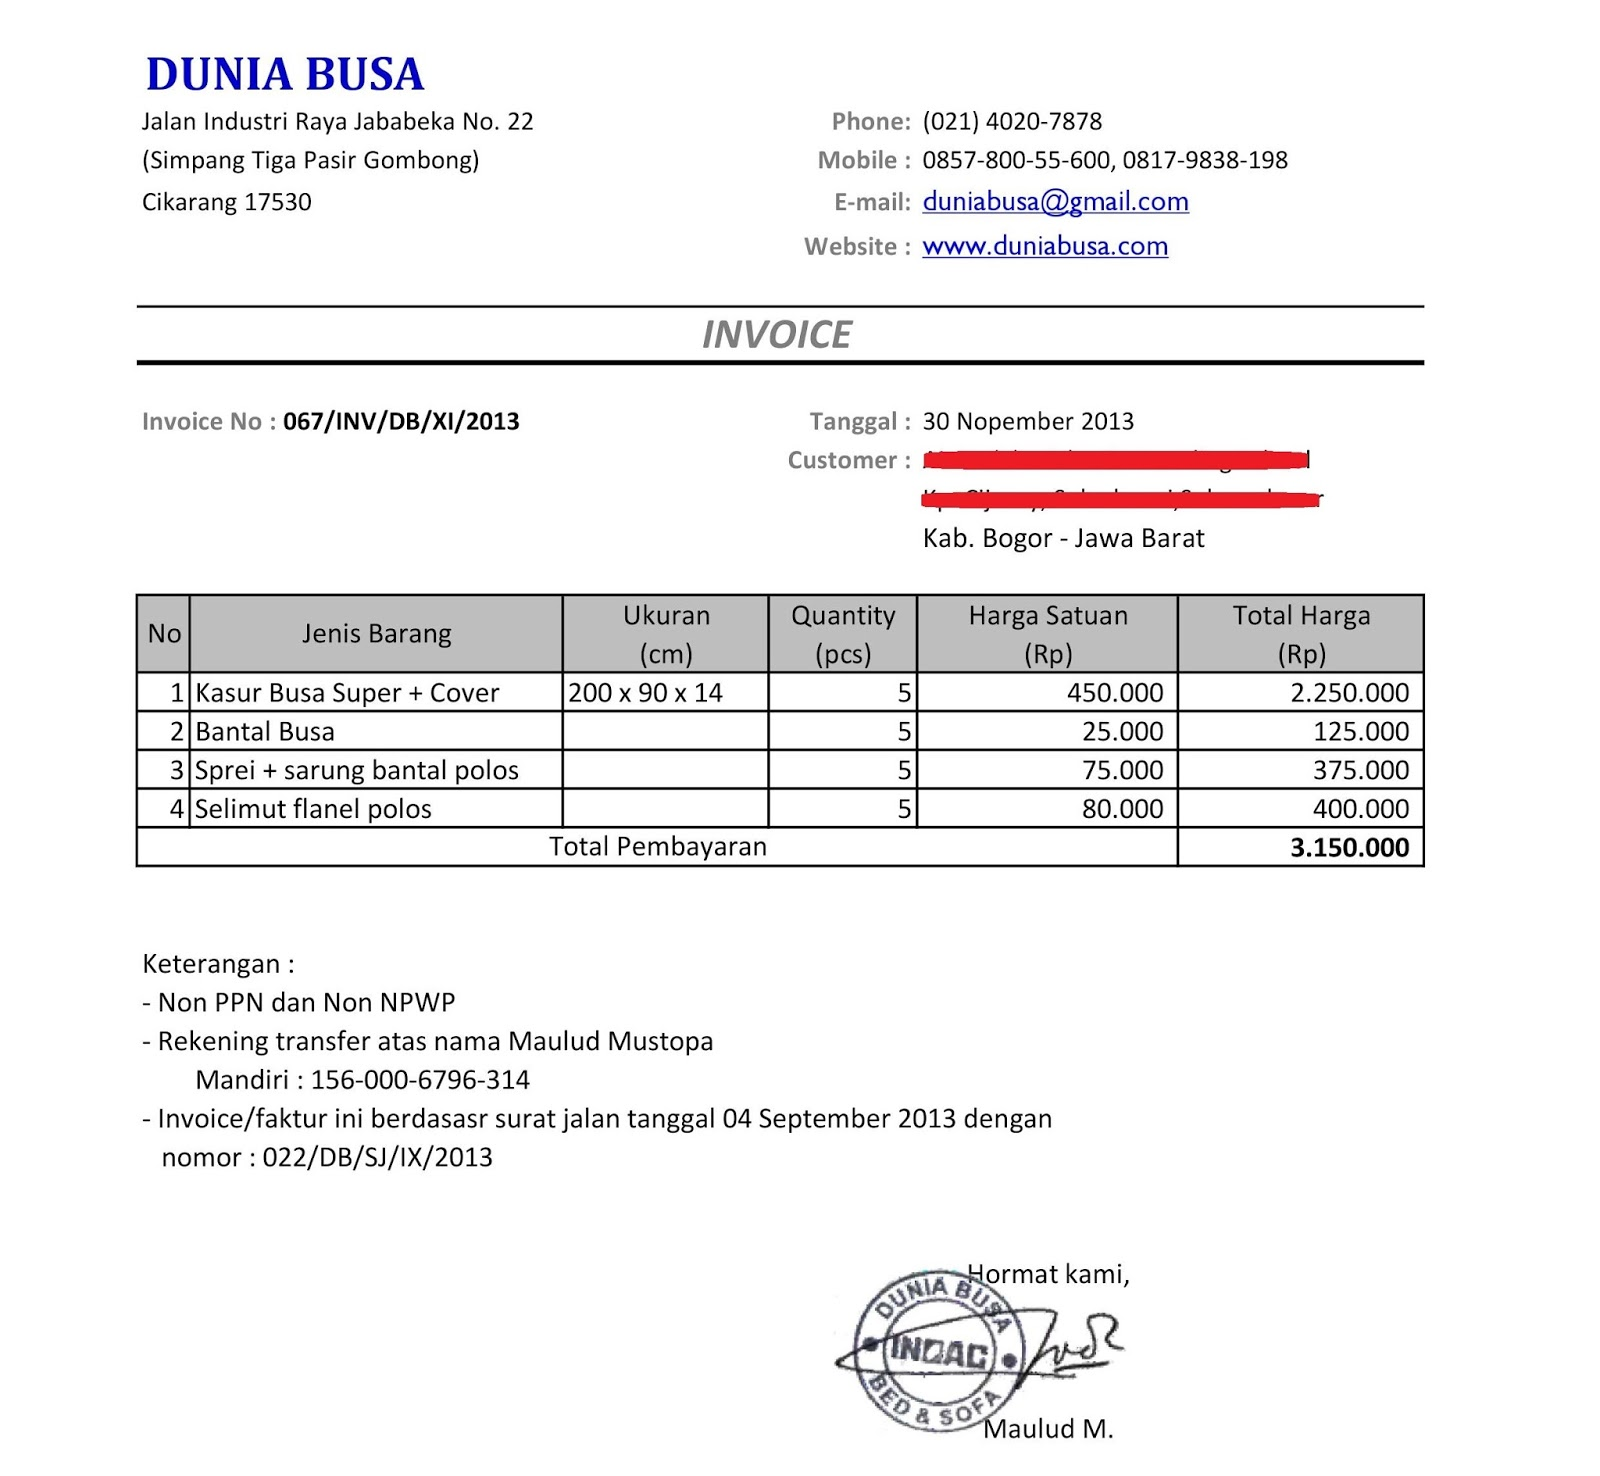 Usdgus  Unique Free Invoice Online  Create Invoice Online  Invoice Template  With Engaging Contoh Format Invoice Atau Surat Tagihan  Brankas Arsip  Free Invoice Online With Comely Msedcl Bill Payment Receipt Also Rental Receipt Templates In Addition Receipt Software Free And Application Receipt Number Uscis As Well As How Long Should You Keep Credit Card Statements And Receipts Additionally Premium Receipt Of Lic From Sklepco With Usdgus  Engaging Free Invoice Online  Create Invoice Online  Invoice Template  With Comely Contoh Format Invoice Atau Surat Tagihan  Brankas Arsip  Free Invoice Online And Unique Msedcl Bill Payment Receipt Also Rental Receipt Templates In Addition Receipt Software Free From Sklepco